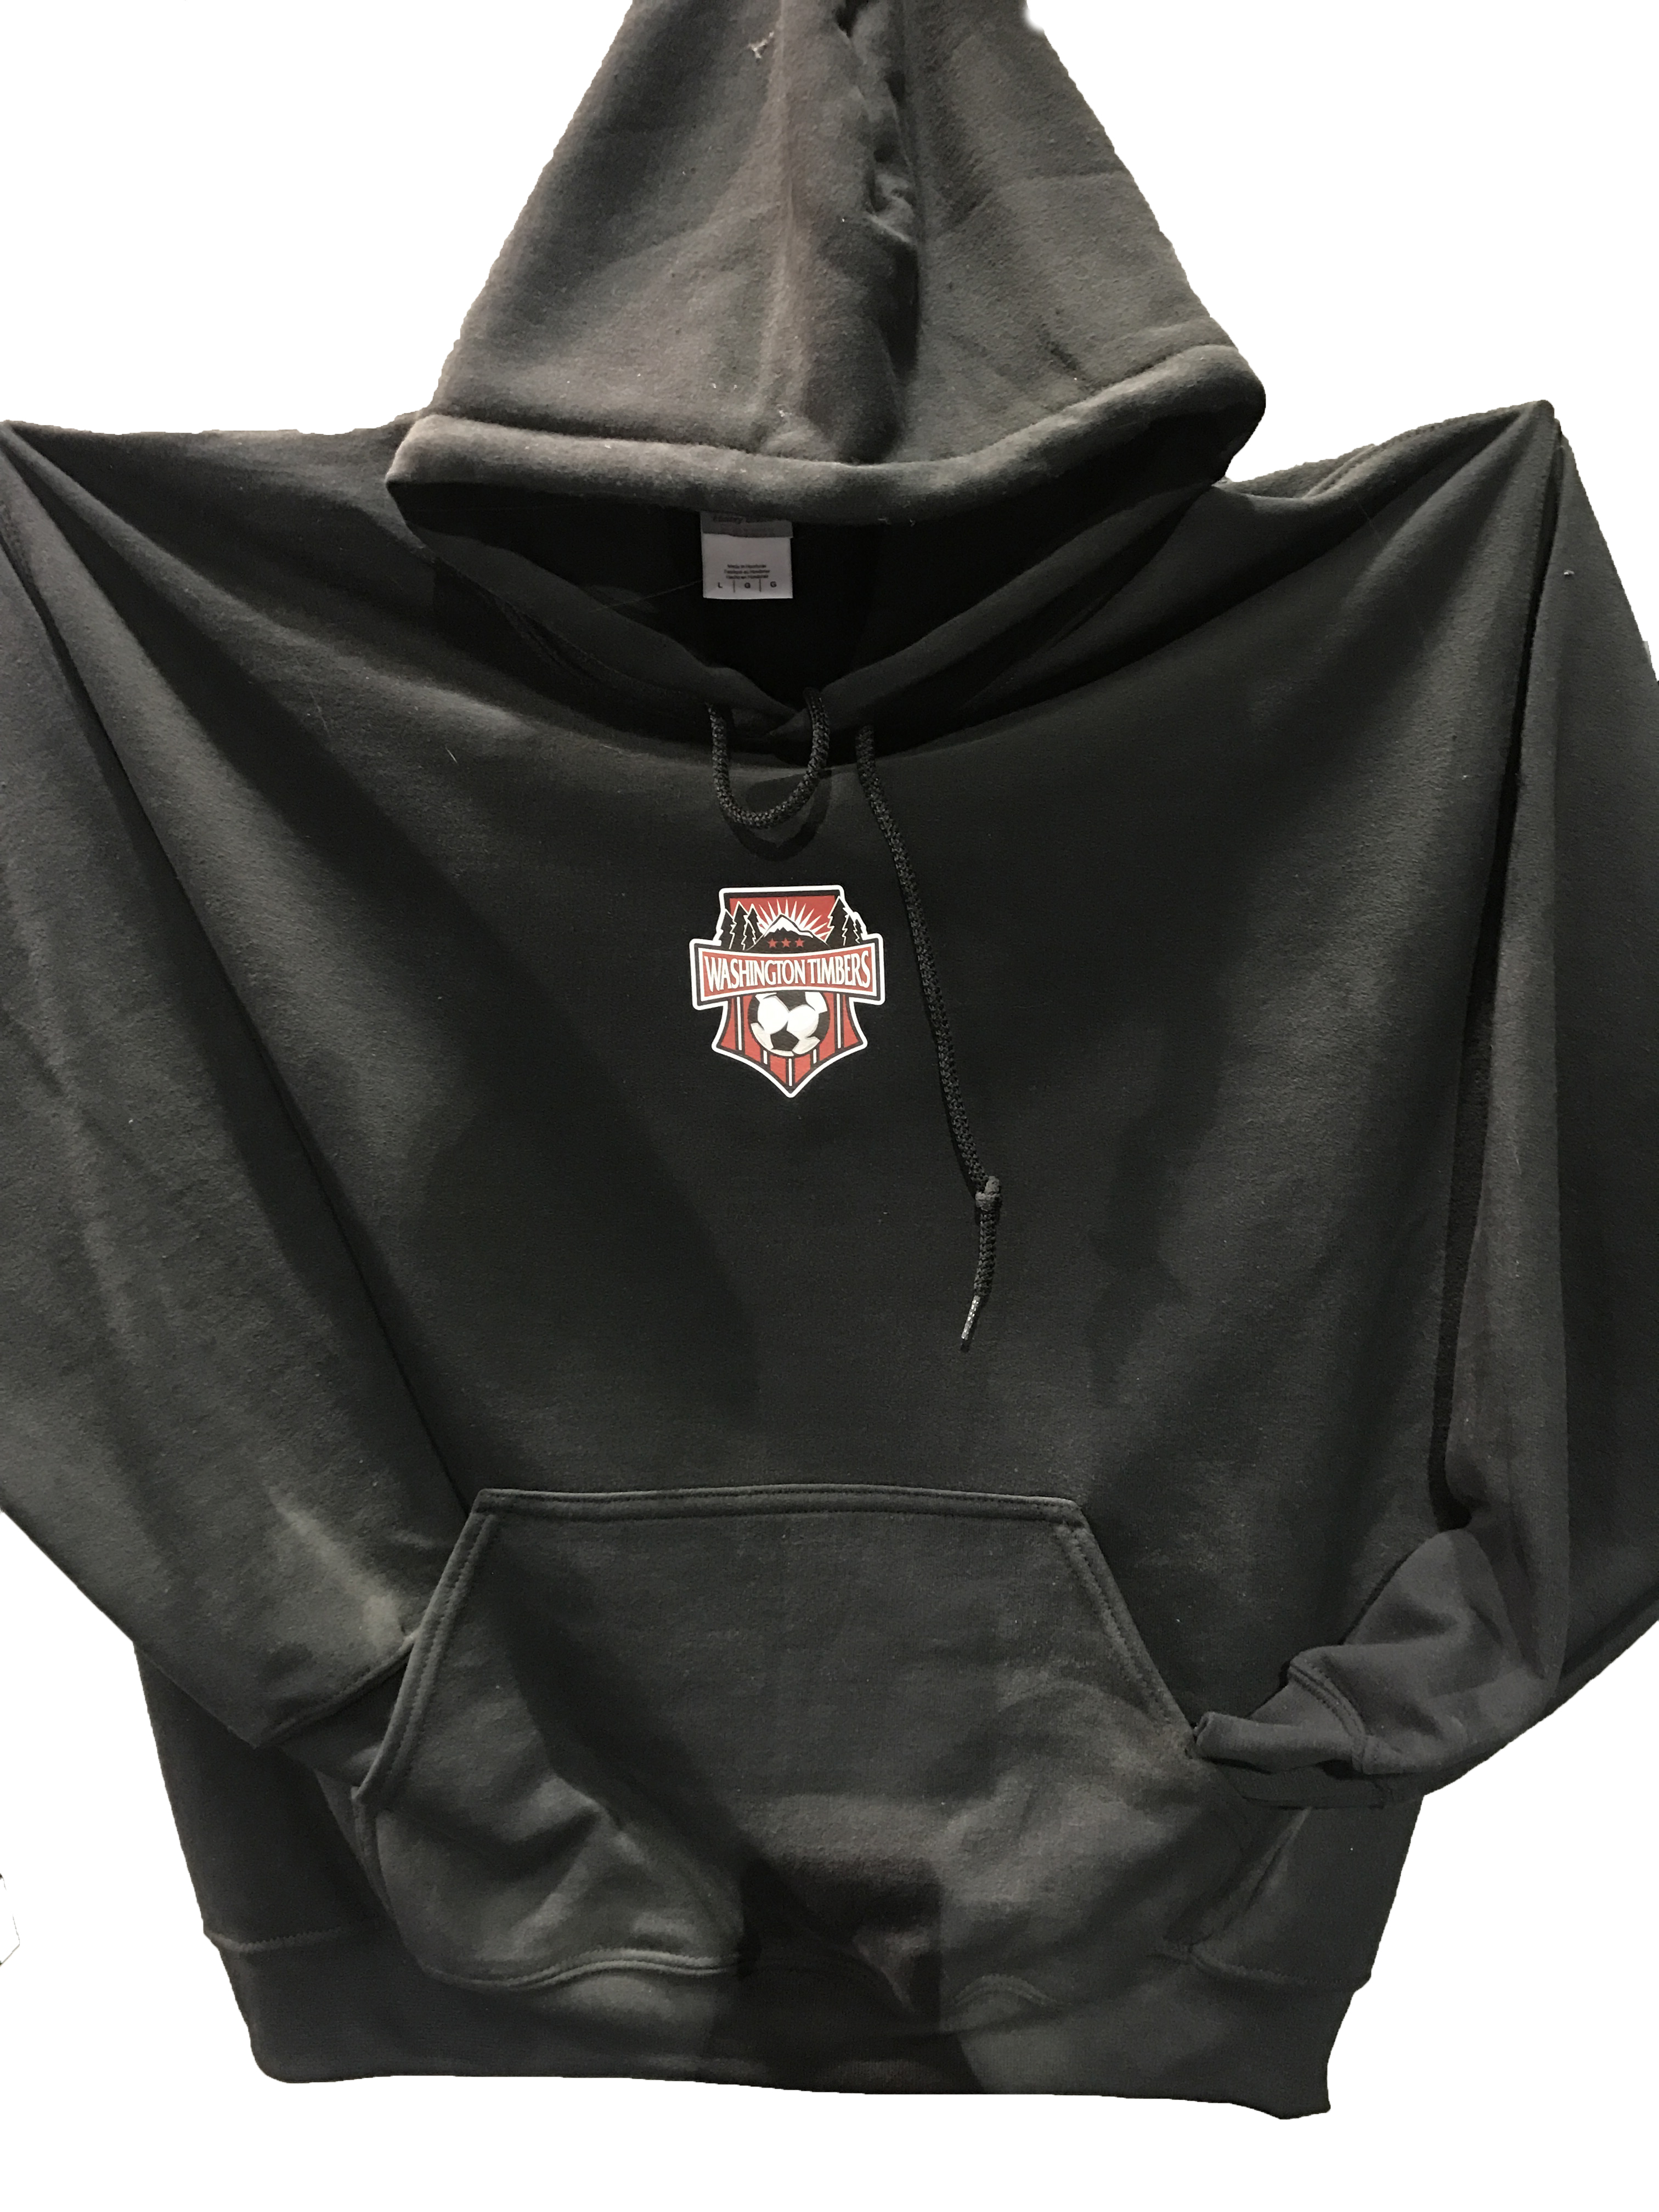 Washington Timbers Hoodie (Black)